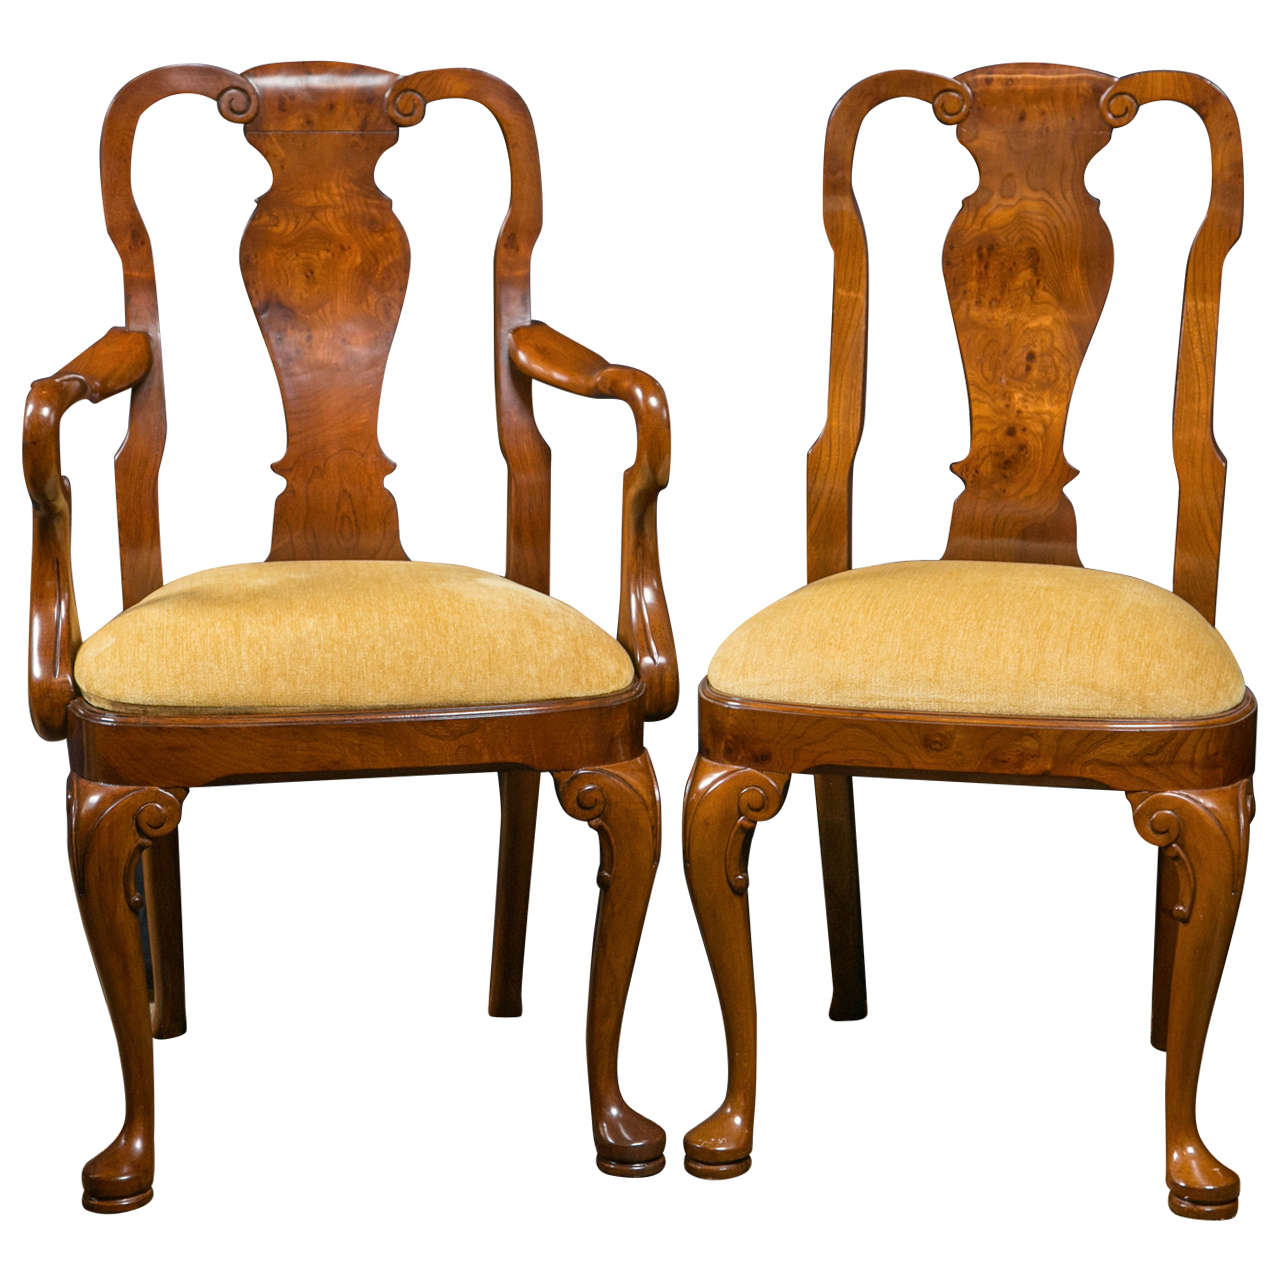 sc 1 st  1stDibs & Walnut Queen Anne Style Dining Chairs For Sale at 1stdibs